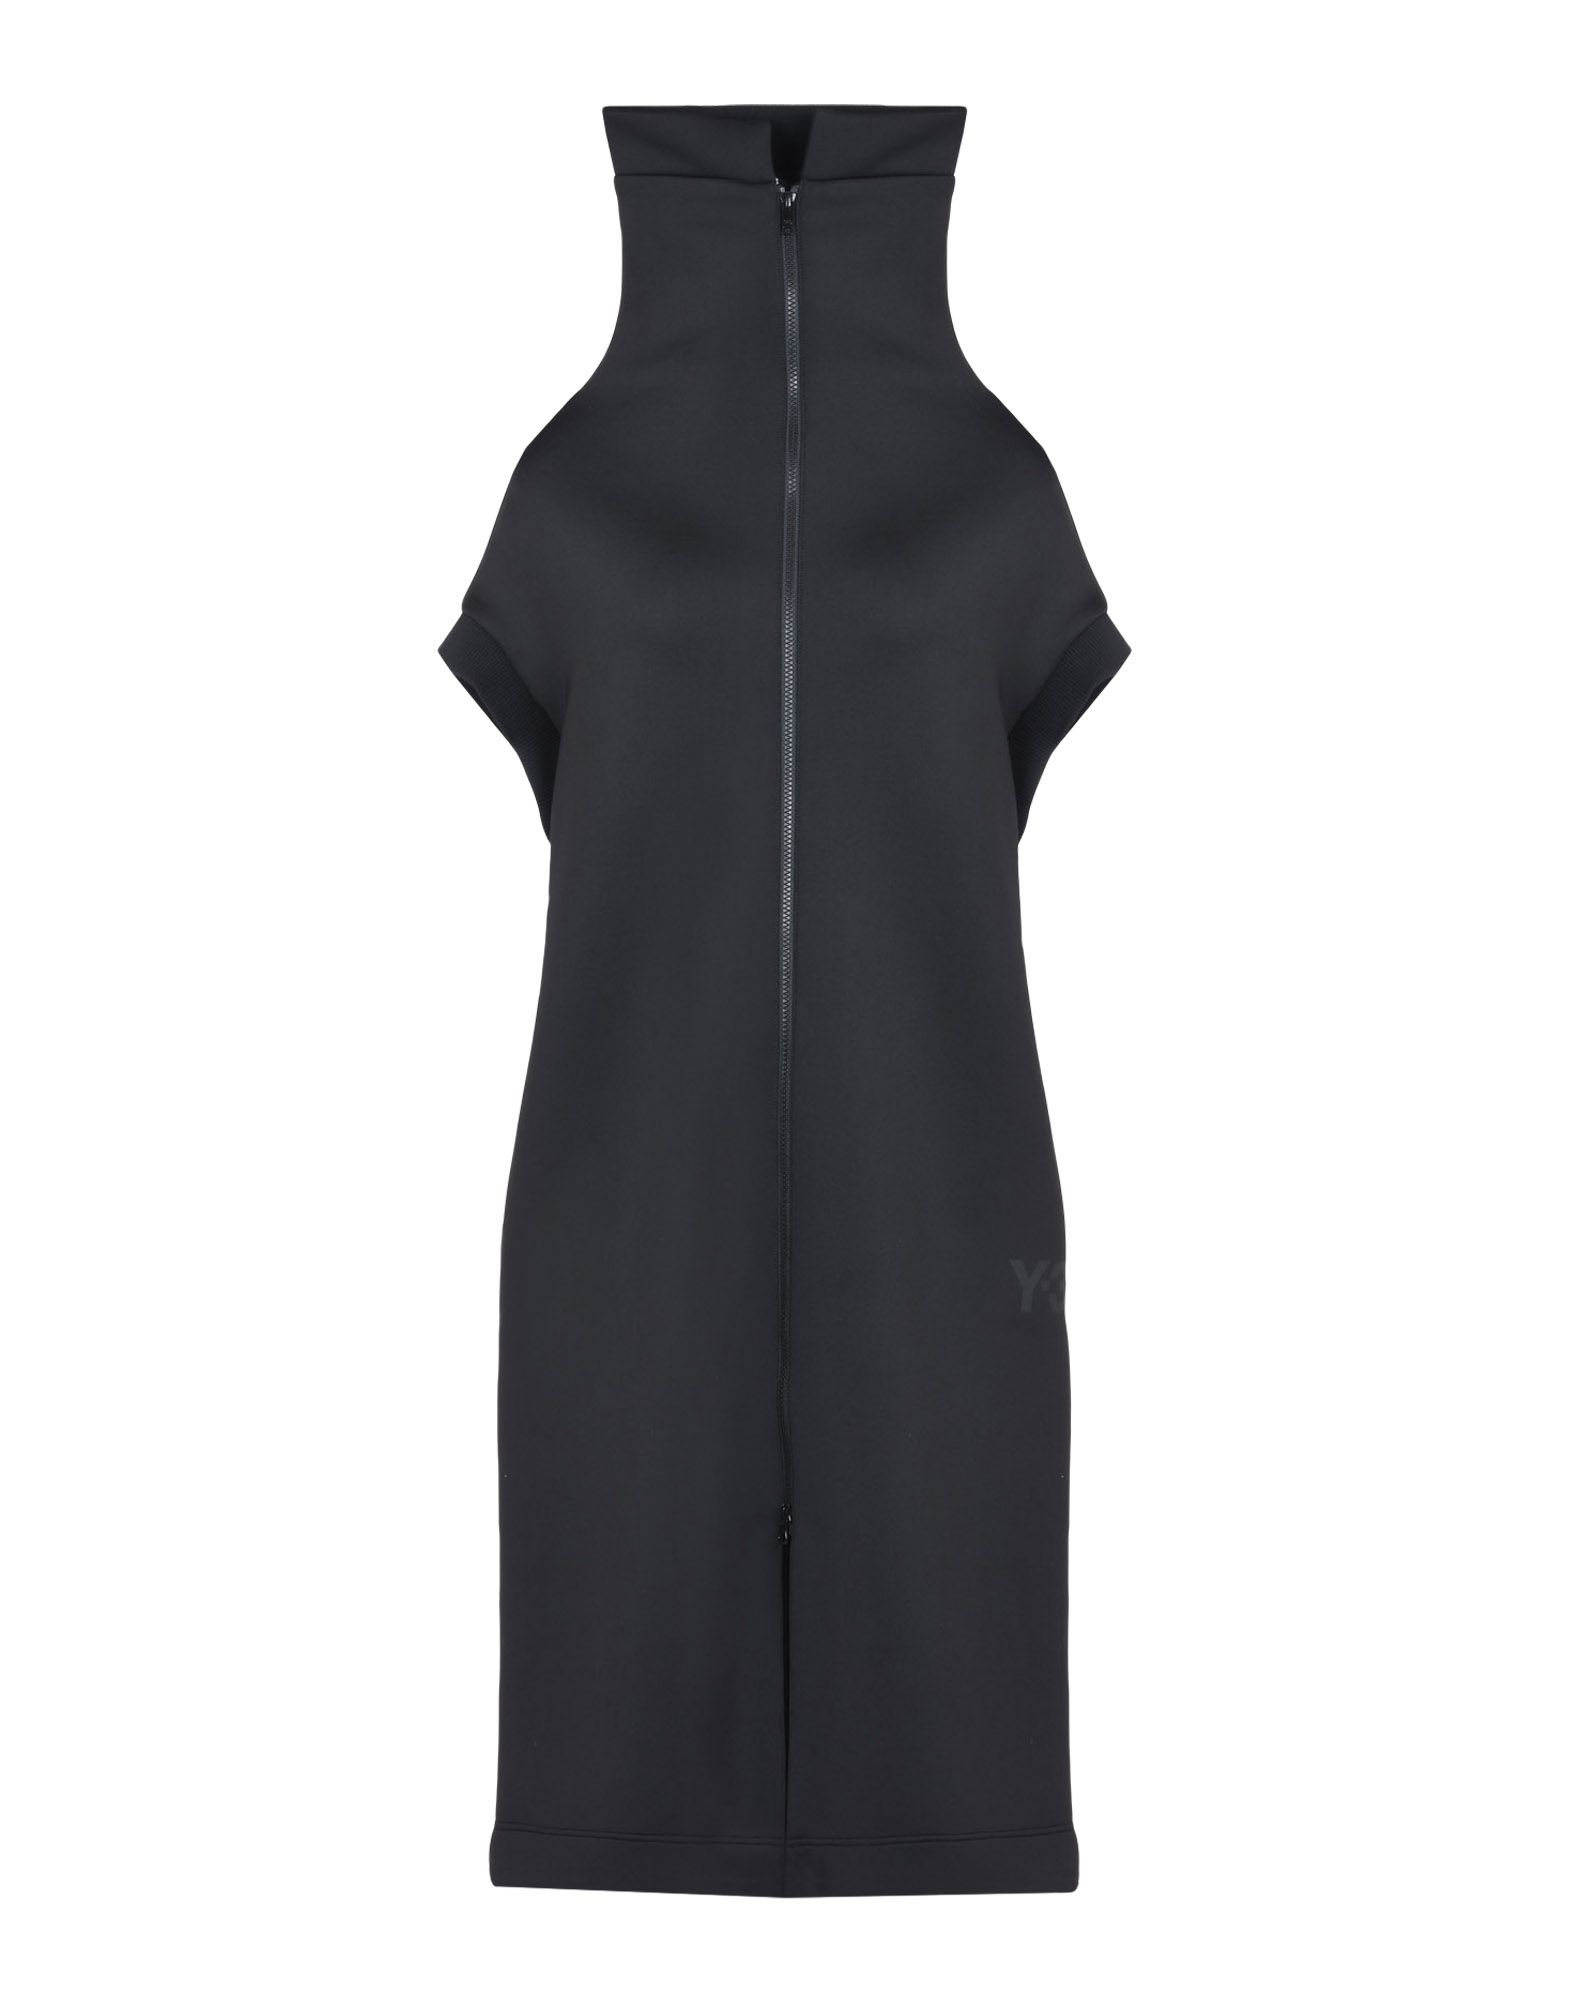 Y 3 LONG VEST Long Vests for Women | Adidas Y-3 Official Store